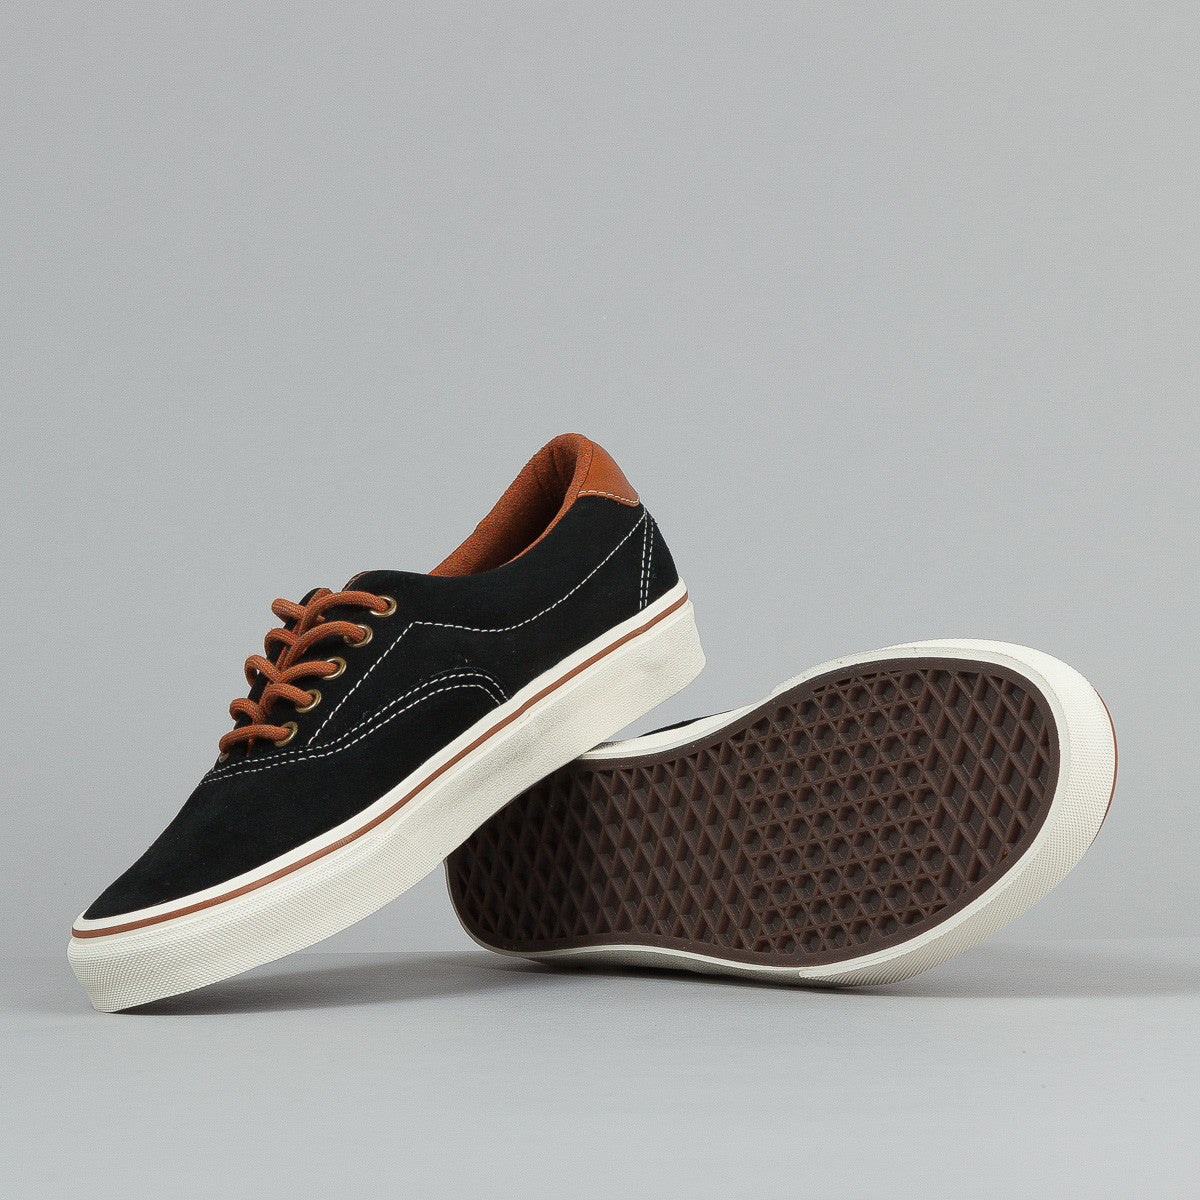 Vans Era 59 Shoes (Suede) - Black / Leather Brown